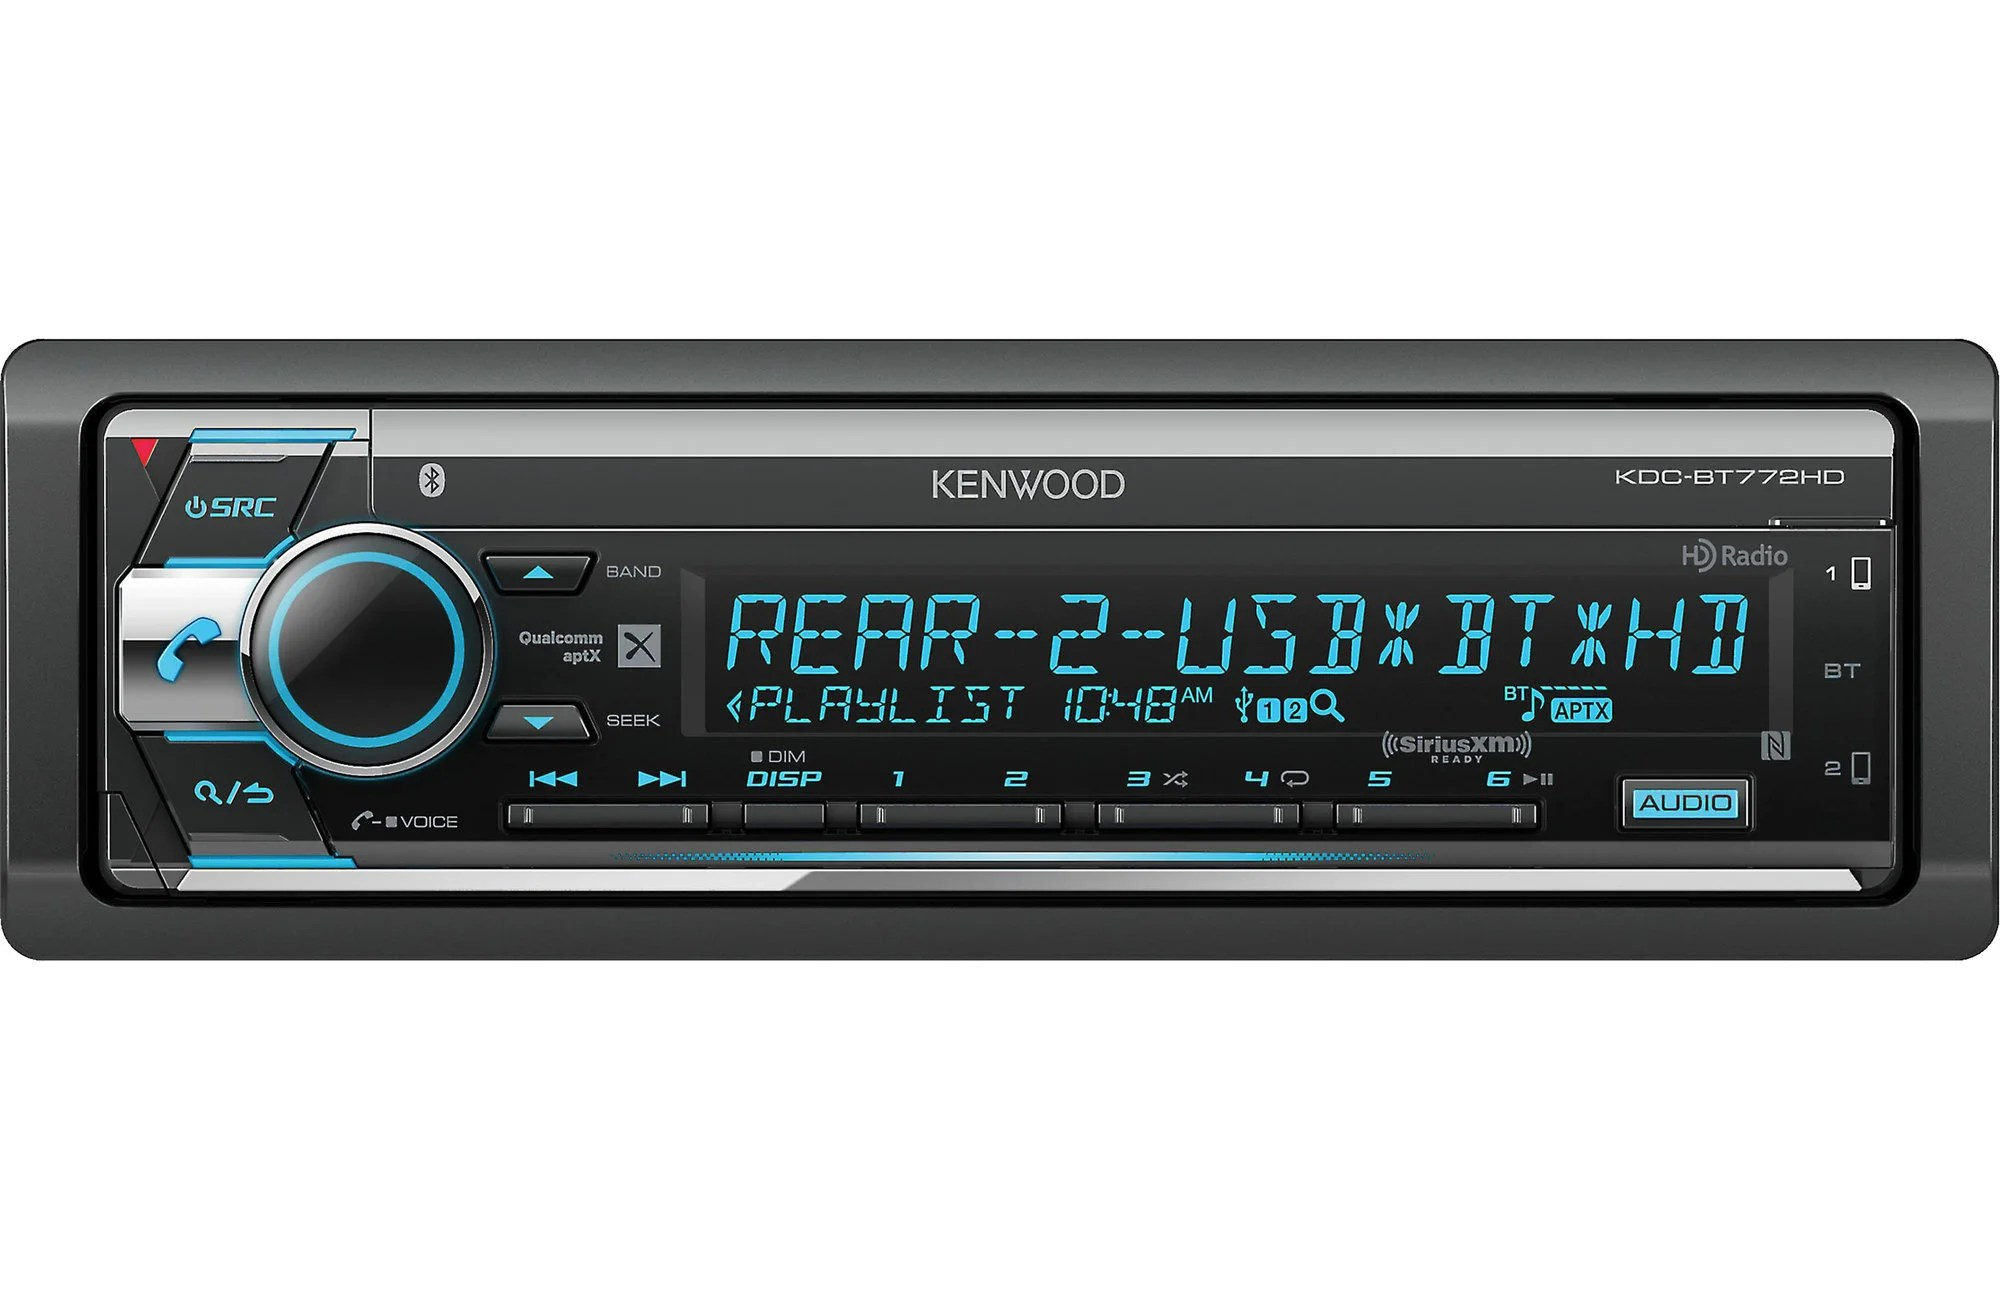 kenwood kdc plumbing rough in dimensions diagram bt772hd stereo receiver with bluetooth and hd